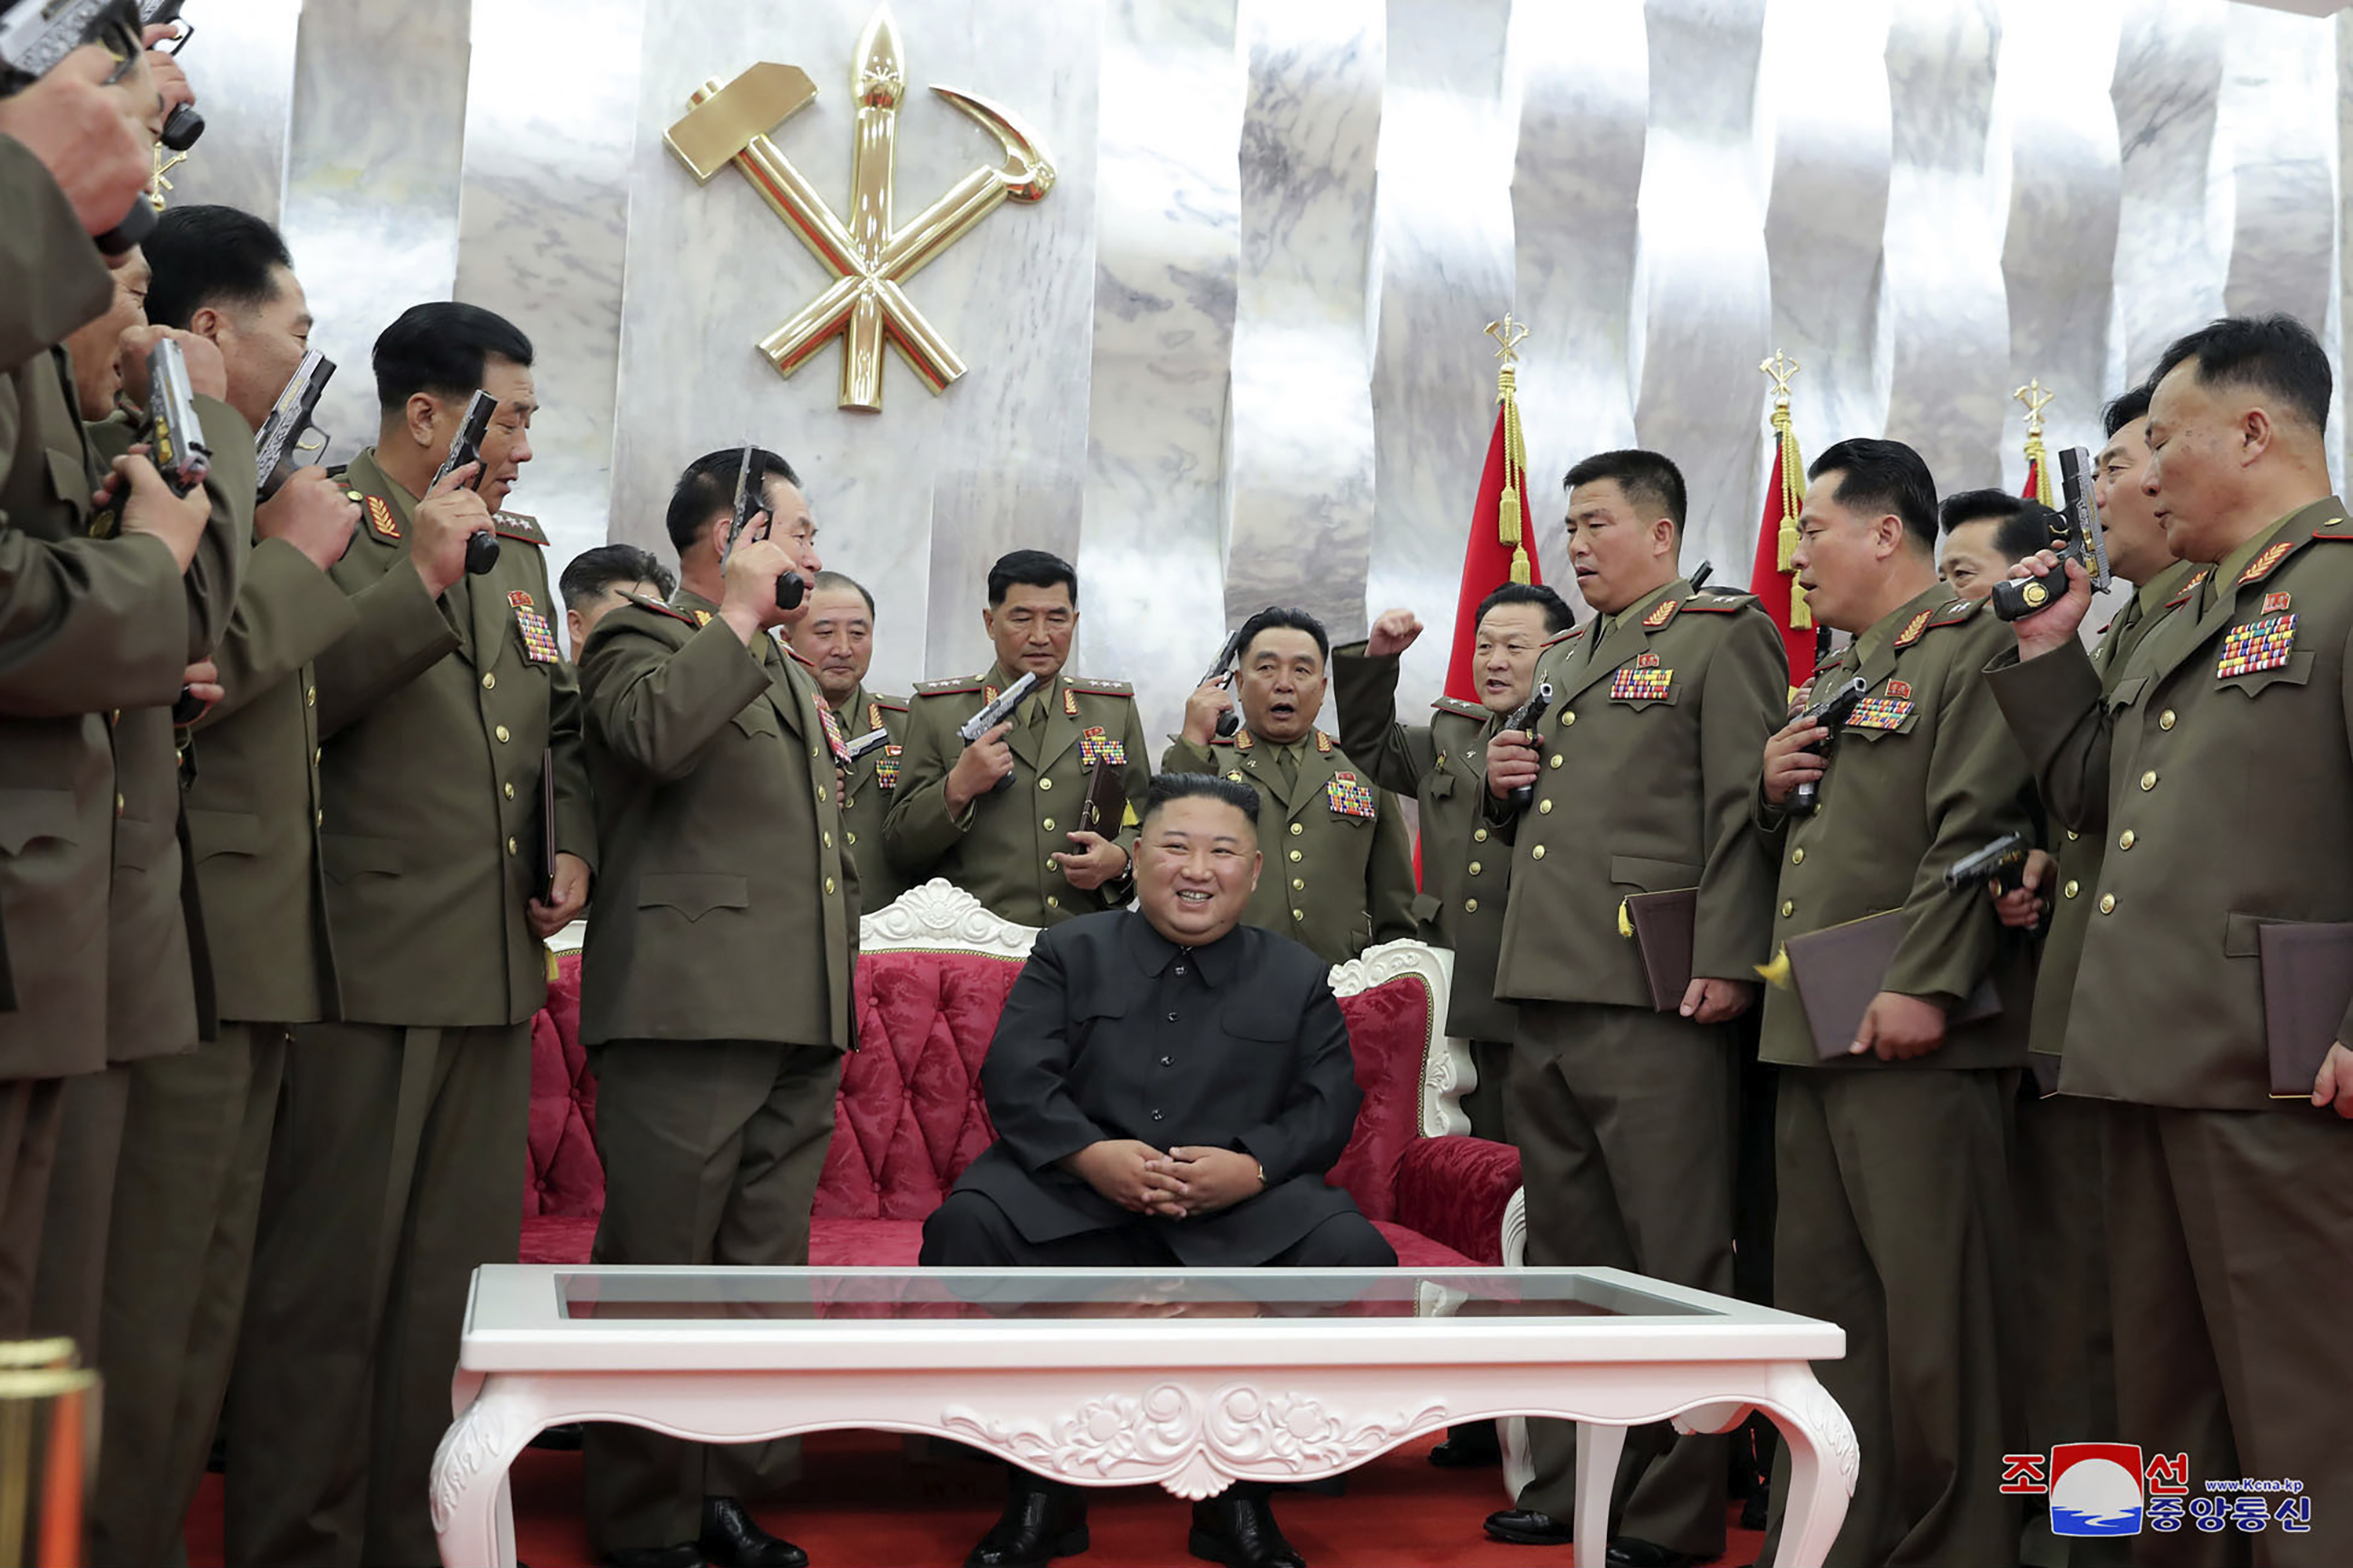 """In this Sunday, July 26, 2020, photo released by the North Korean government, North Korean leader Kim Jong Un, sitting center,  is surrounded by senior military officials holding """"Paektusan"""" commemorative pistols they received from Kim during a ceremony in Pyongyang, North Korea. Independent journalists were not given access to cover the event depicted in this image distributed by the North Korean government. The content of this image is as provided and cannot be independently verified. Korean language watermark on image as provided by source reads:  KCNA  which is the abbreviation for Korean Central News Agency."""